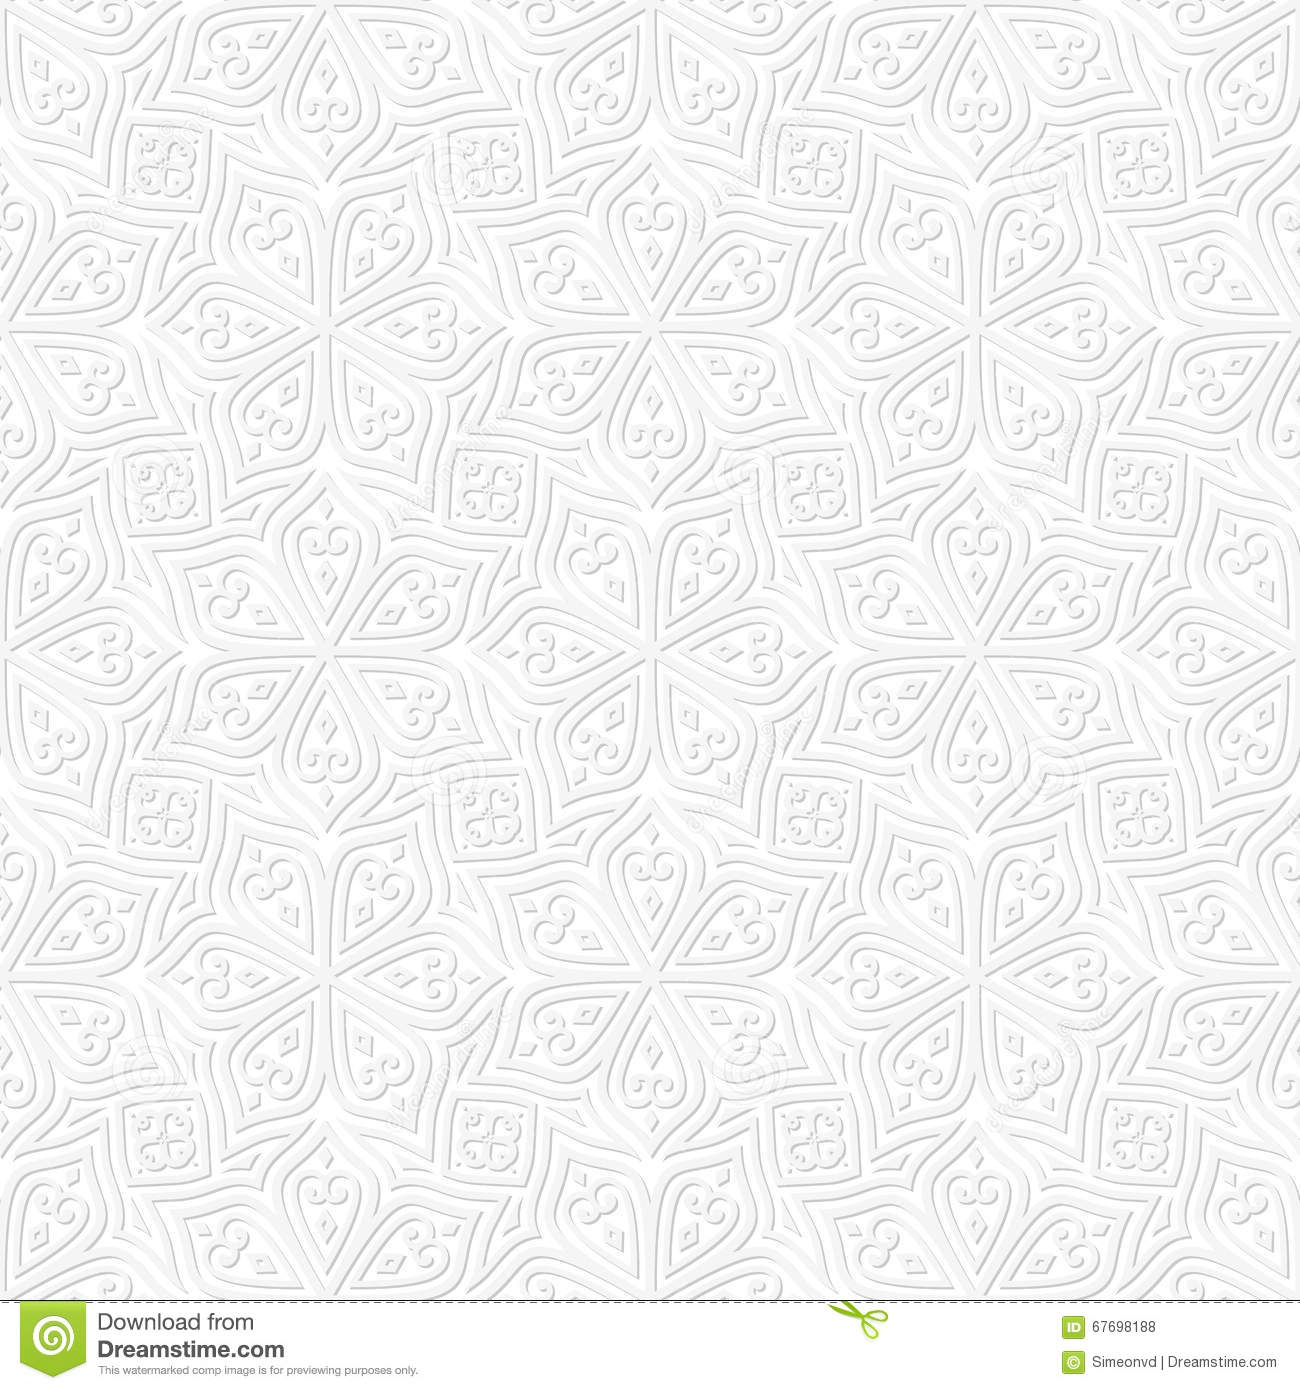 batik seamless pattern white background stock vector illustration of asian middle 67698188 dreamstime com